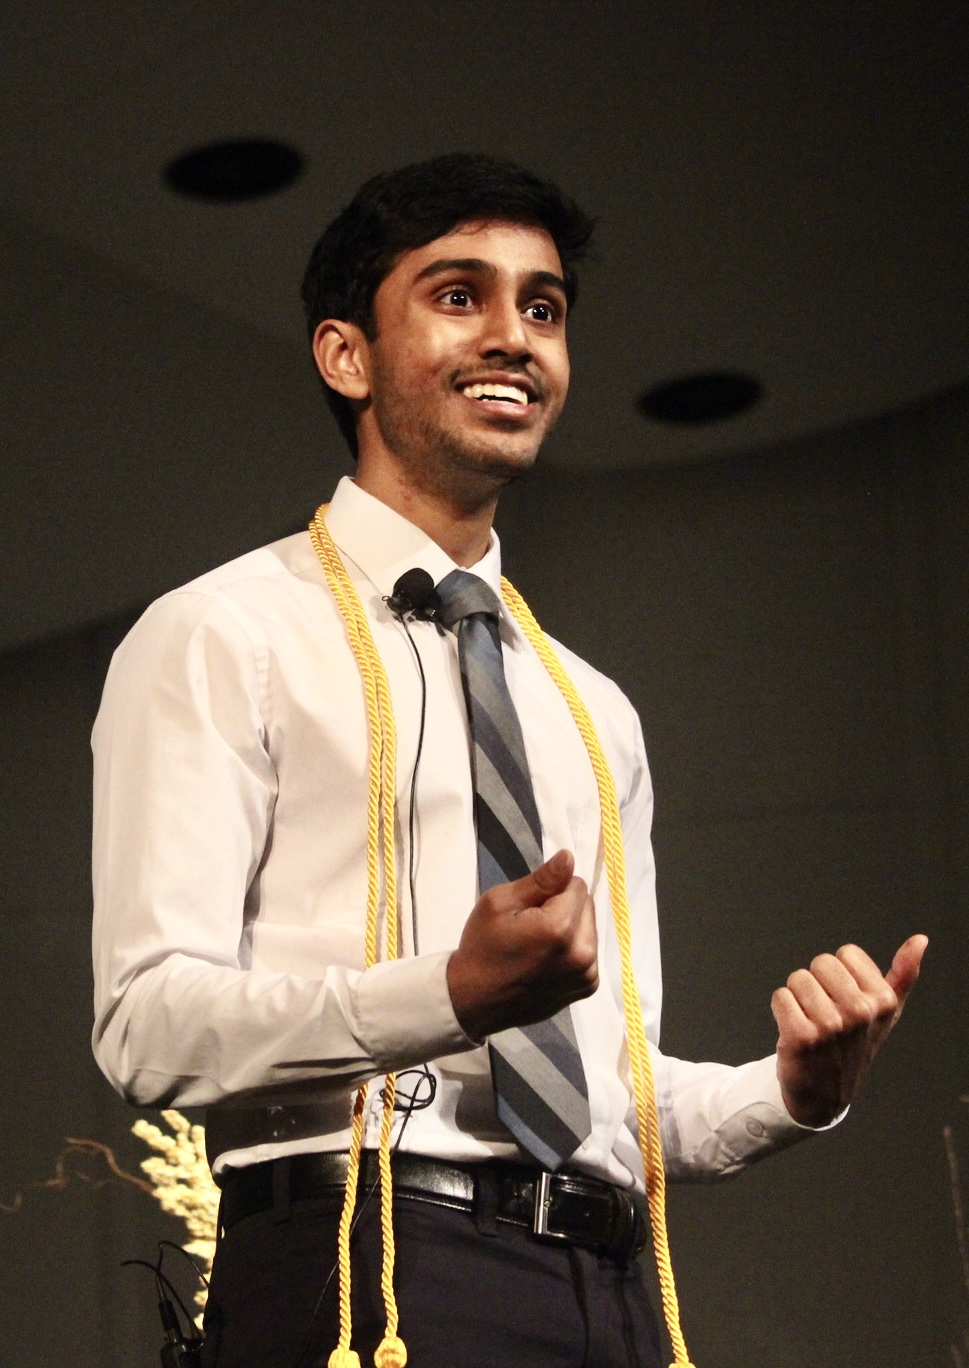 Speech+Team+Member+Amartya+Dave+delivers+his+state-qualifying+oratorical+declamation.